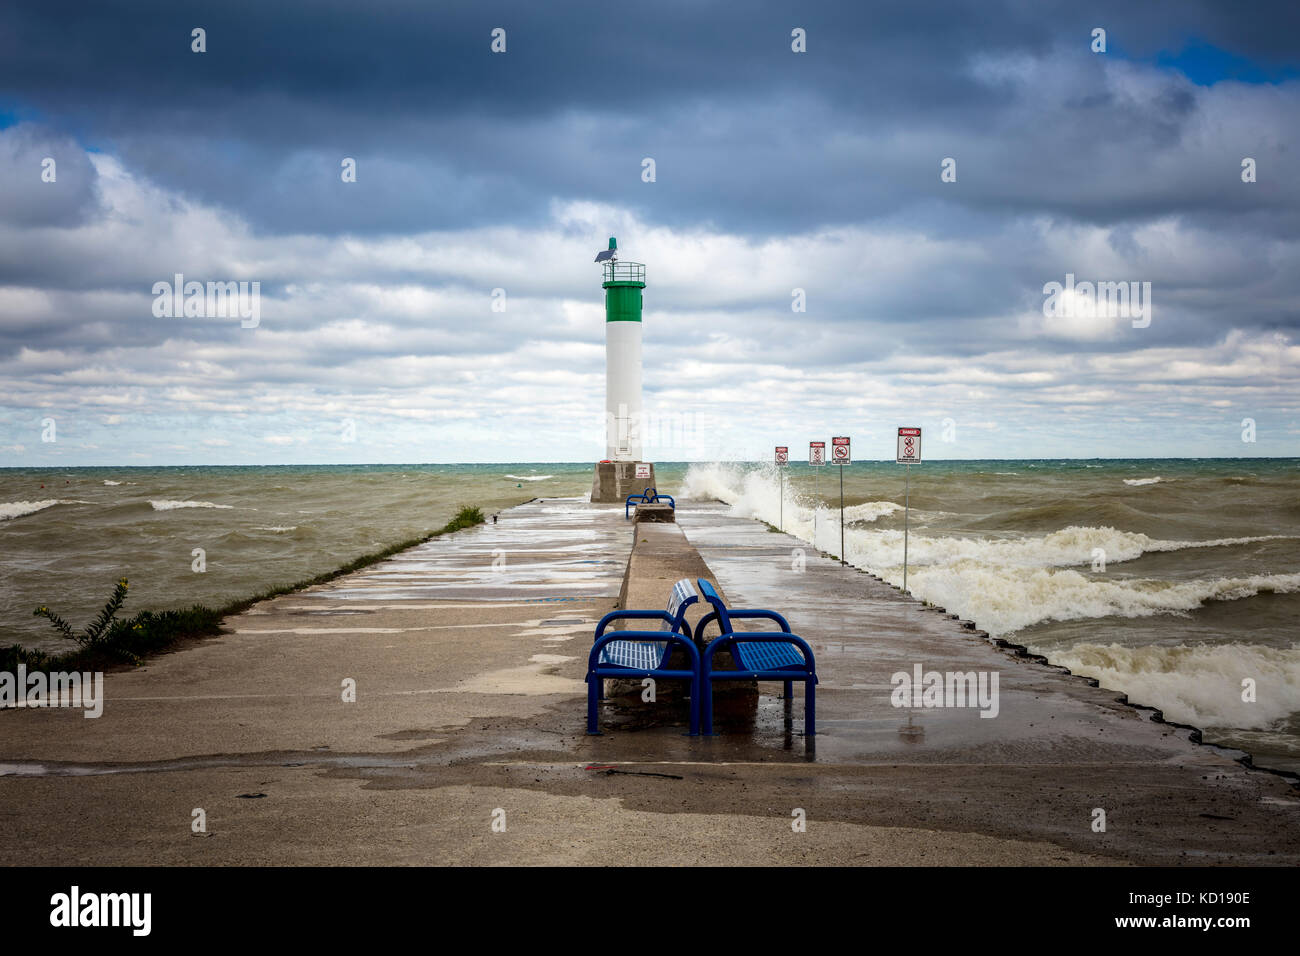 Waves hitting the pier at the mouth of Parkhill Creek at Lake Huron in Grand Bend, Ontario, Canada - Stock Image